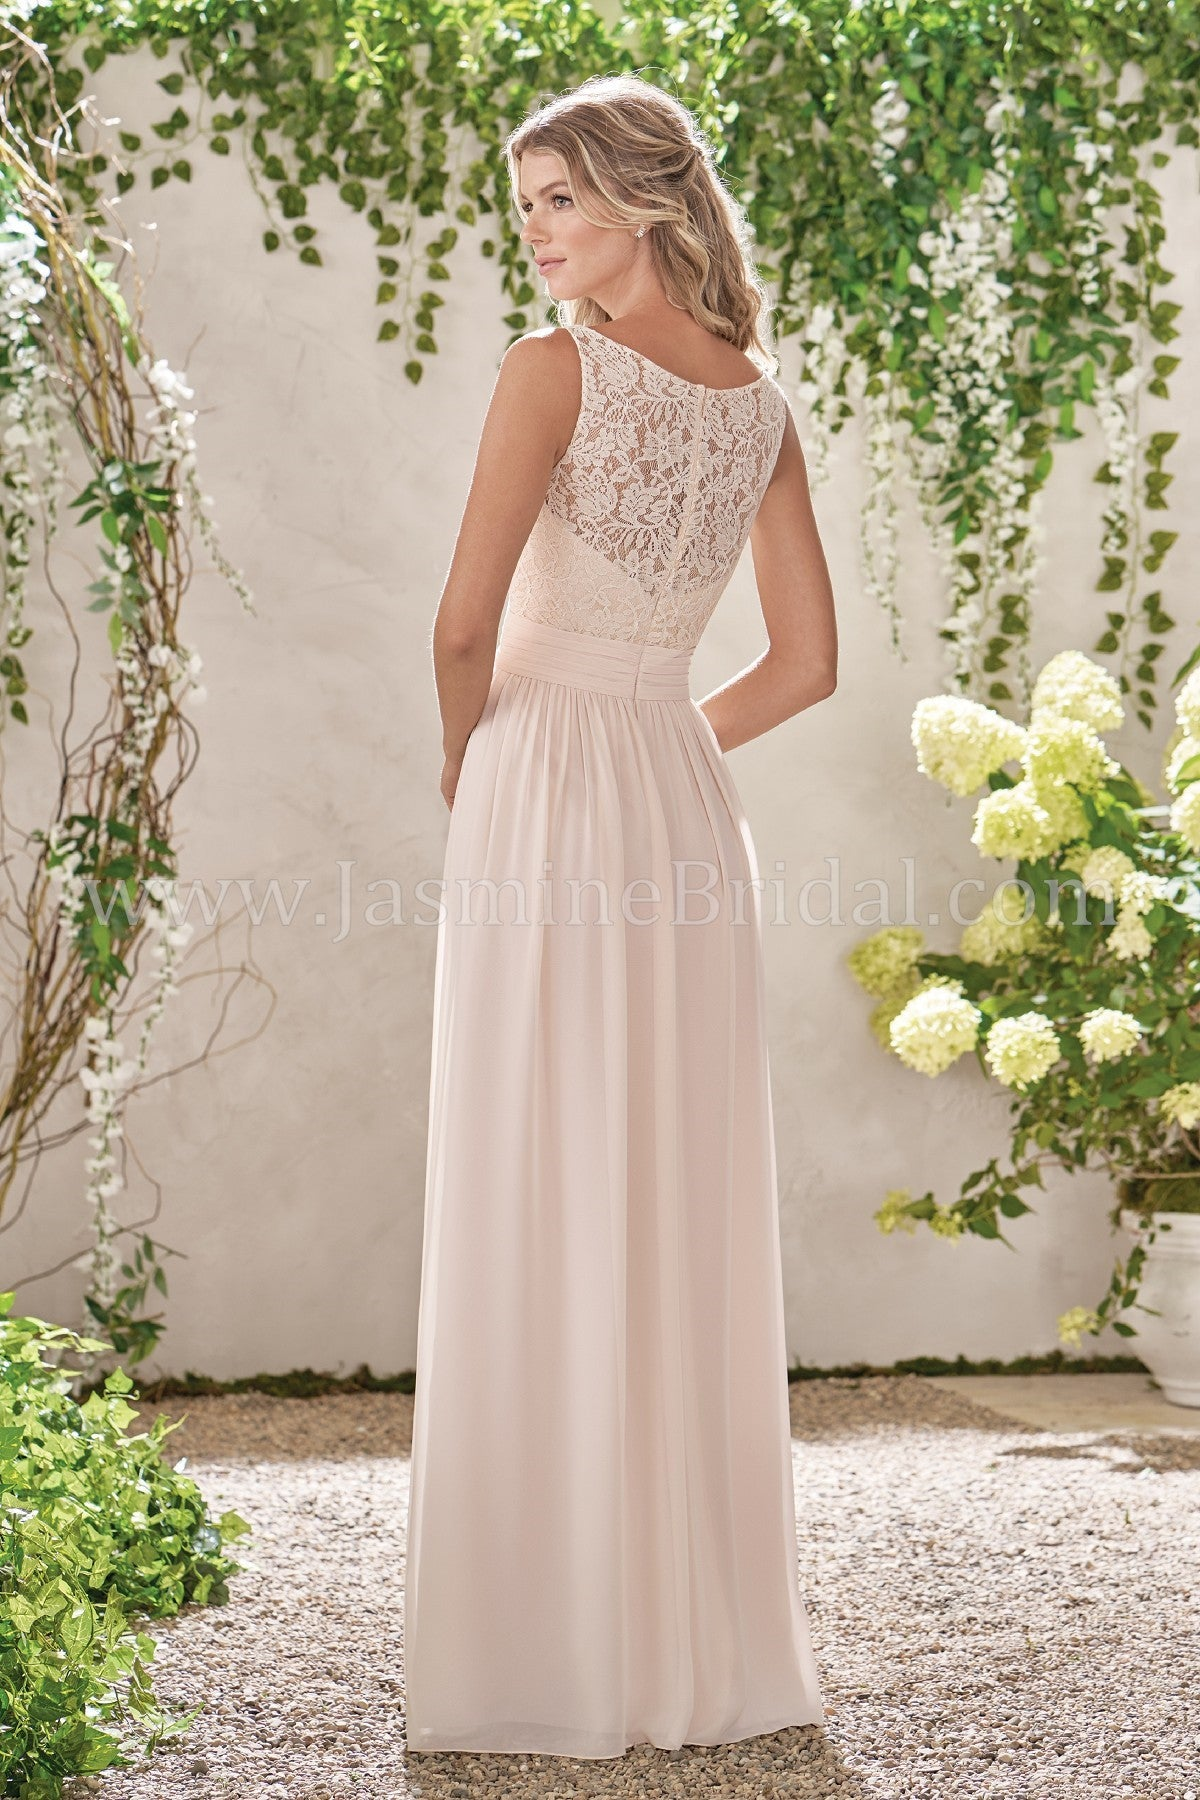 Poly Chiffon V-Neck Dress with Lace and Rouching - Available Long or Short  ... b9a3558a7